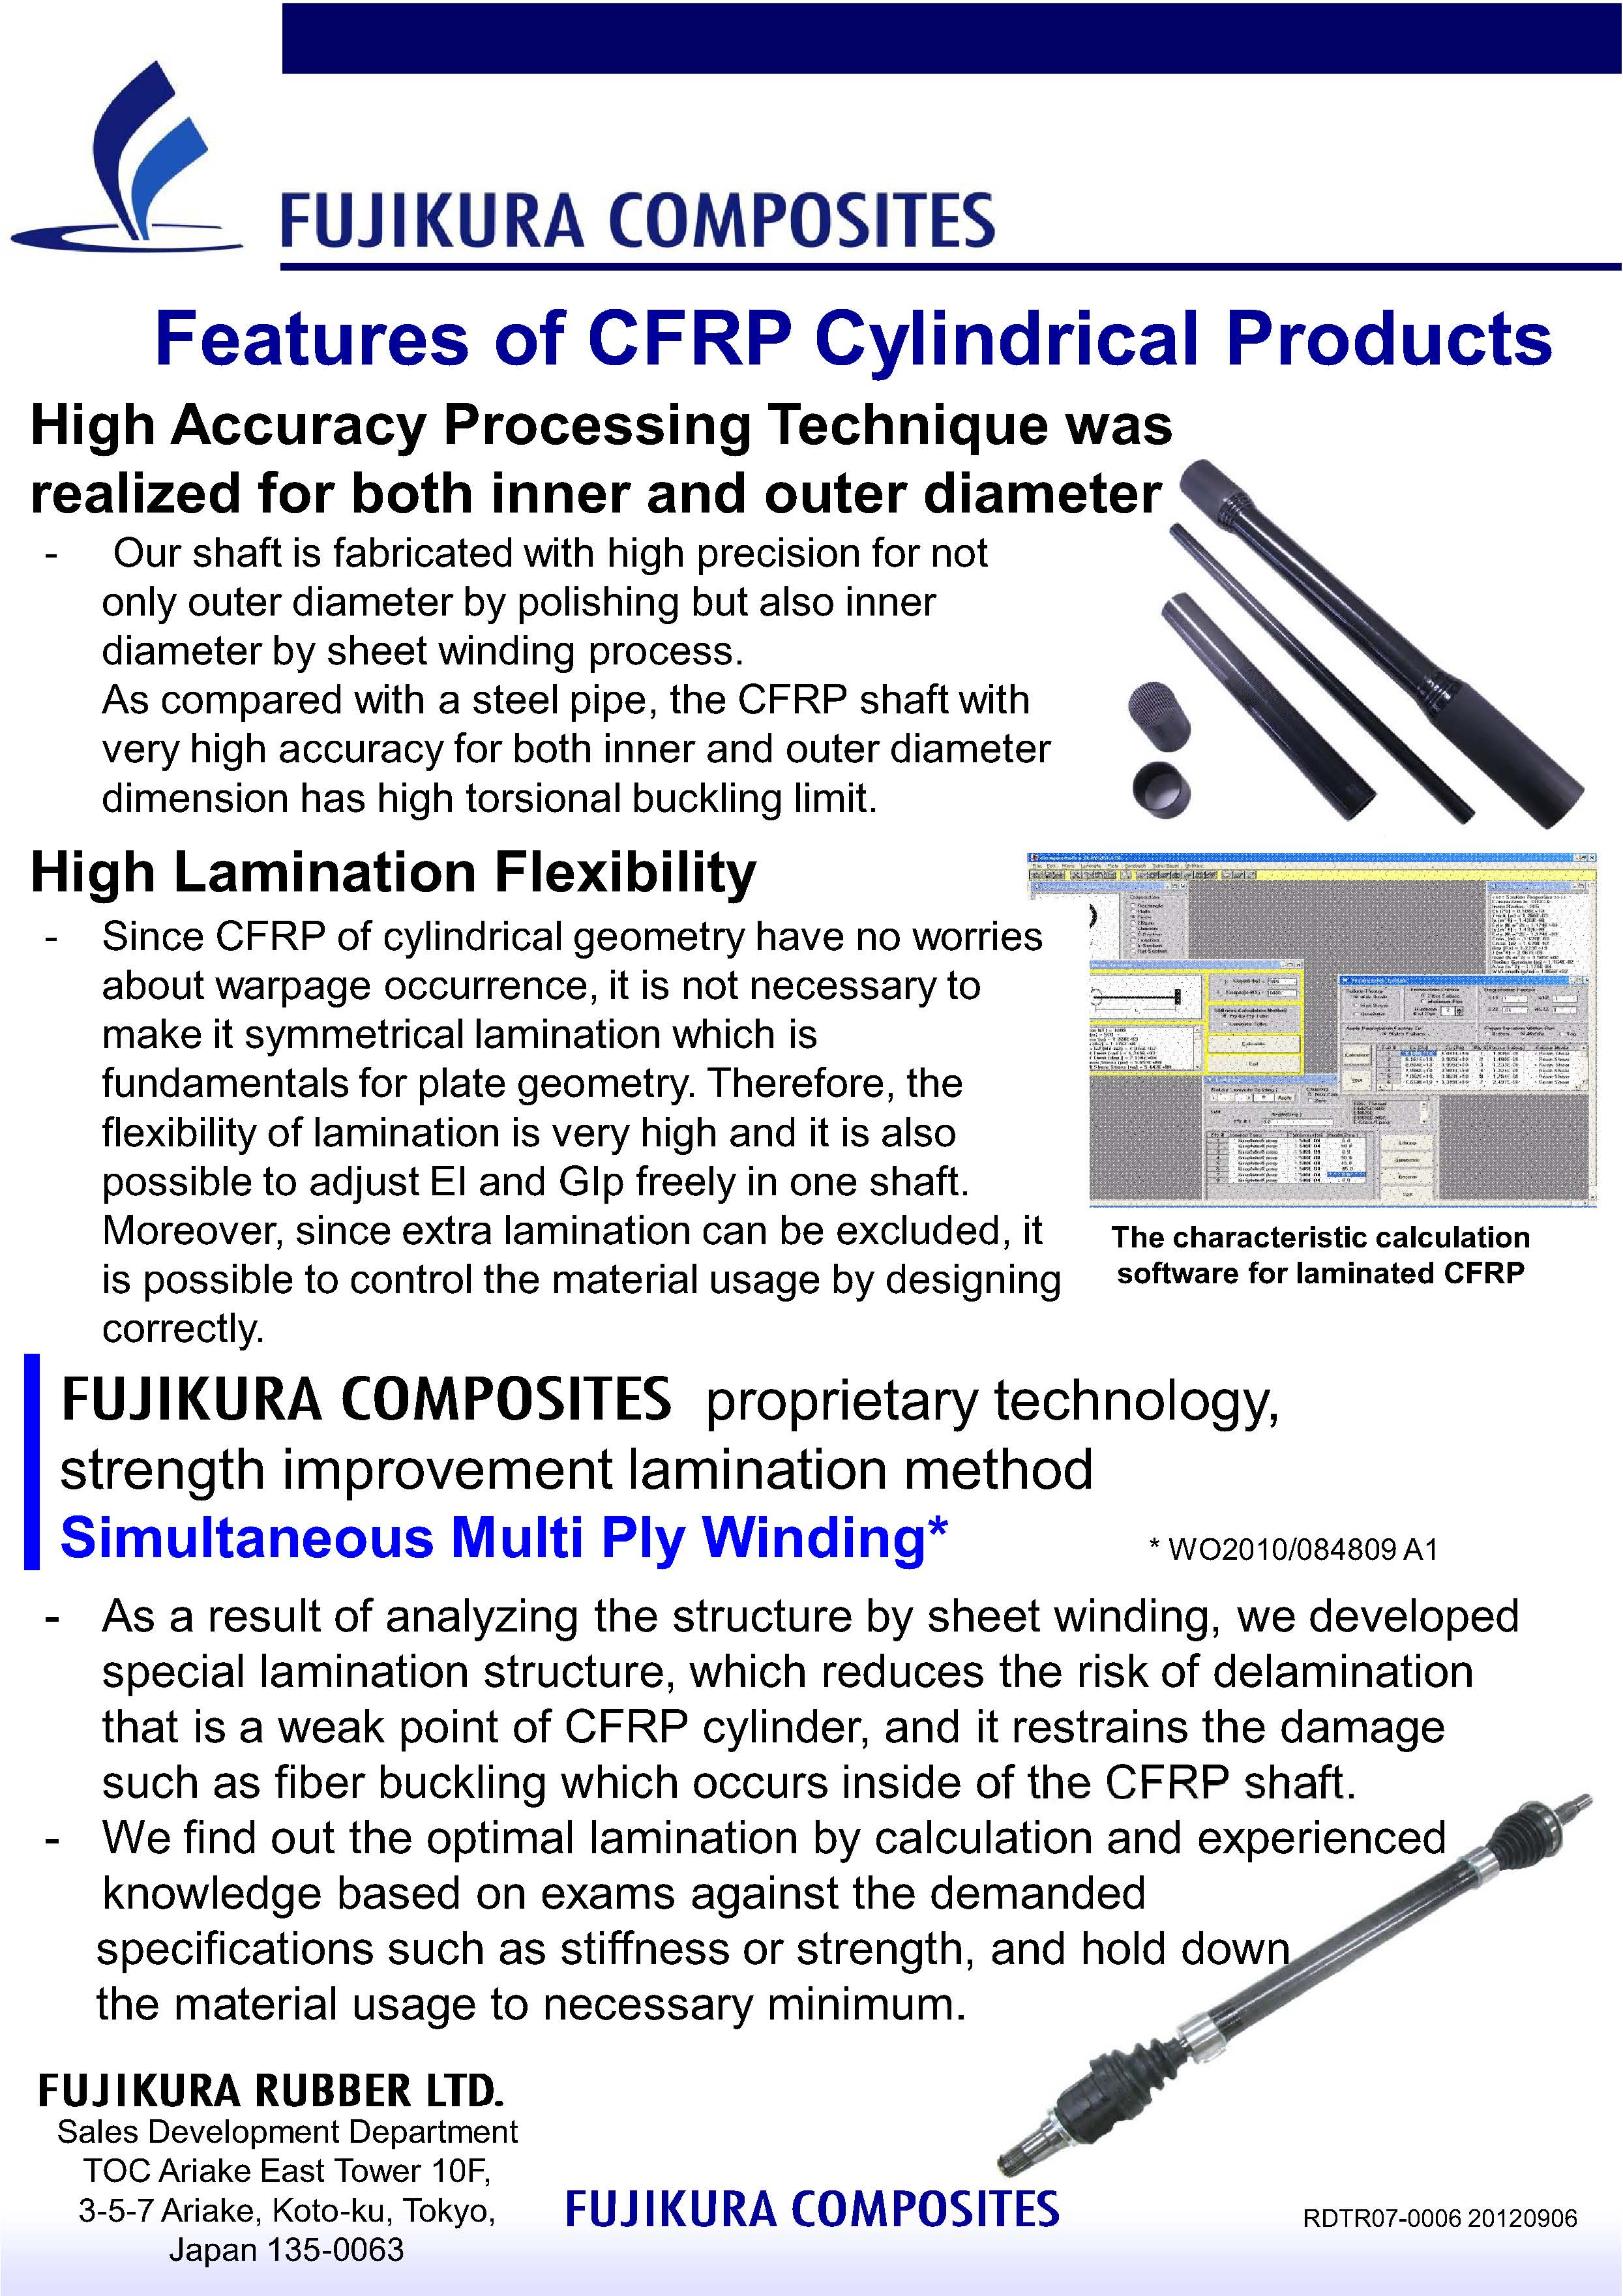 Features of CFRP Cylindrical Products